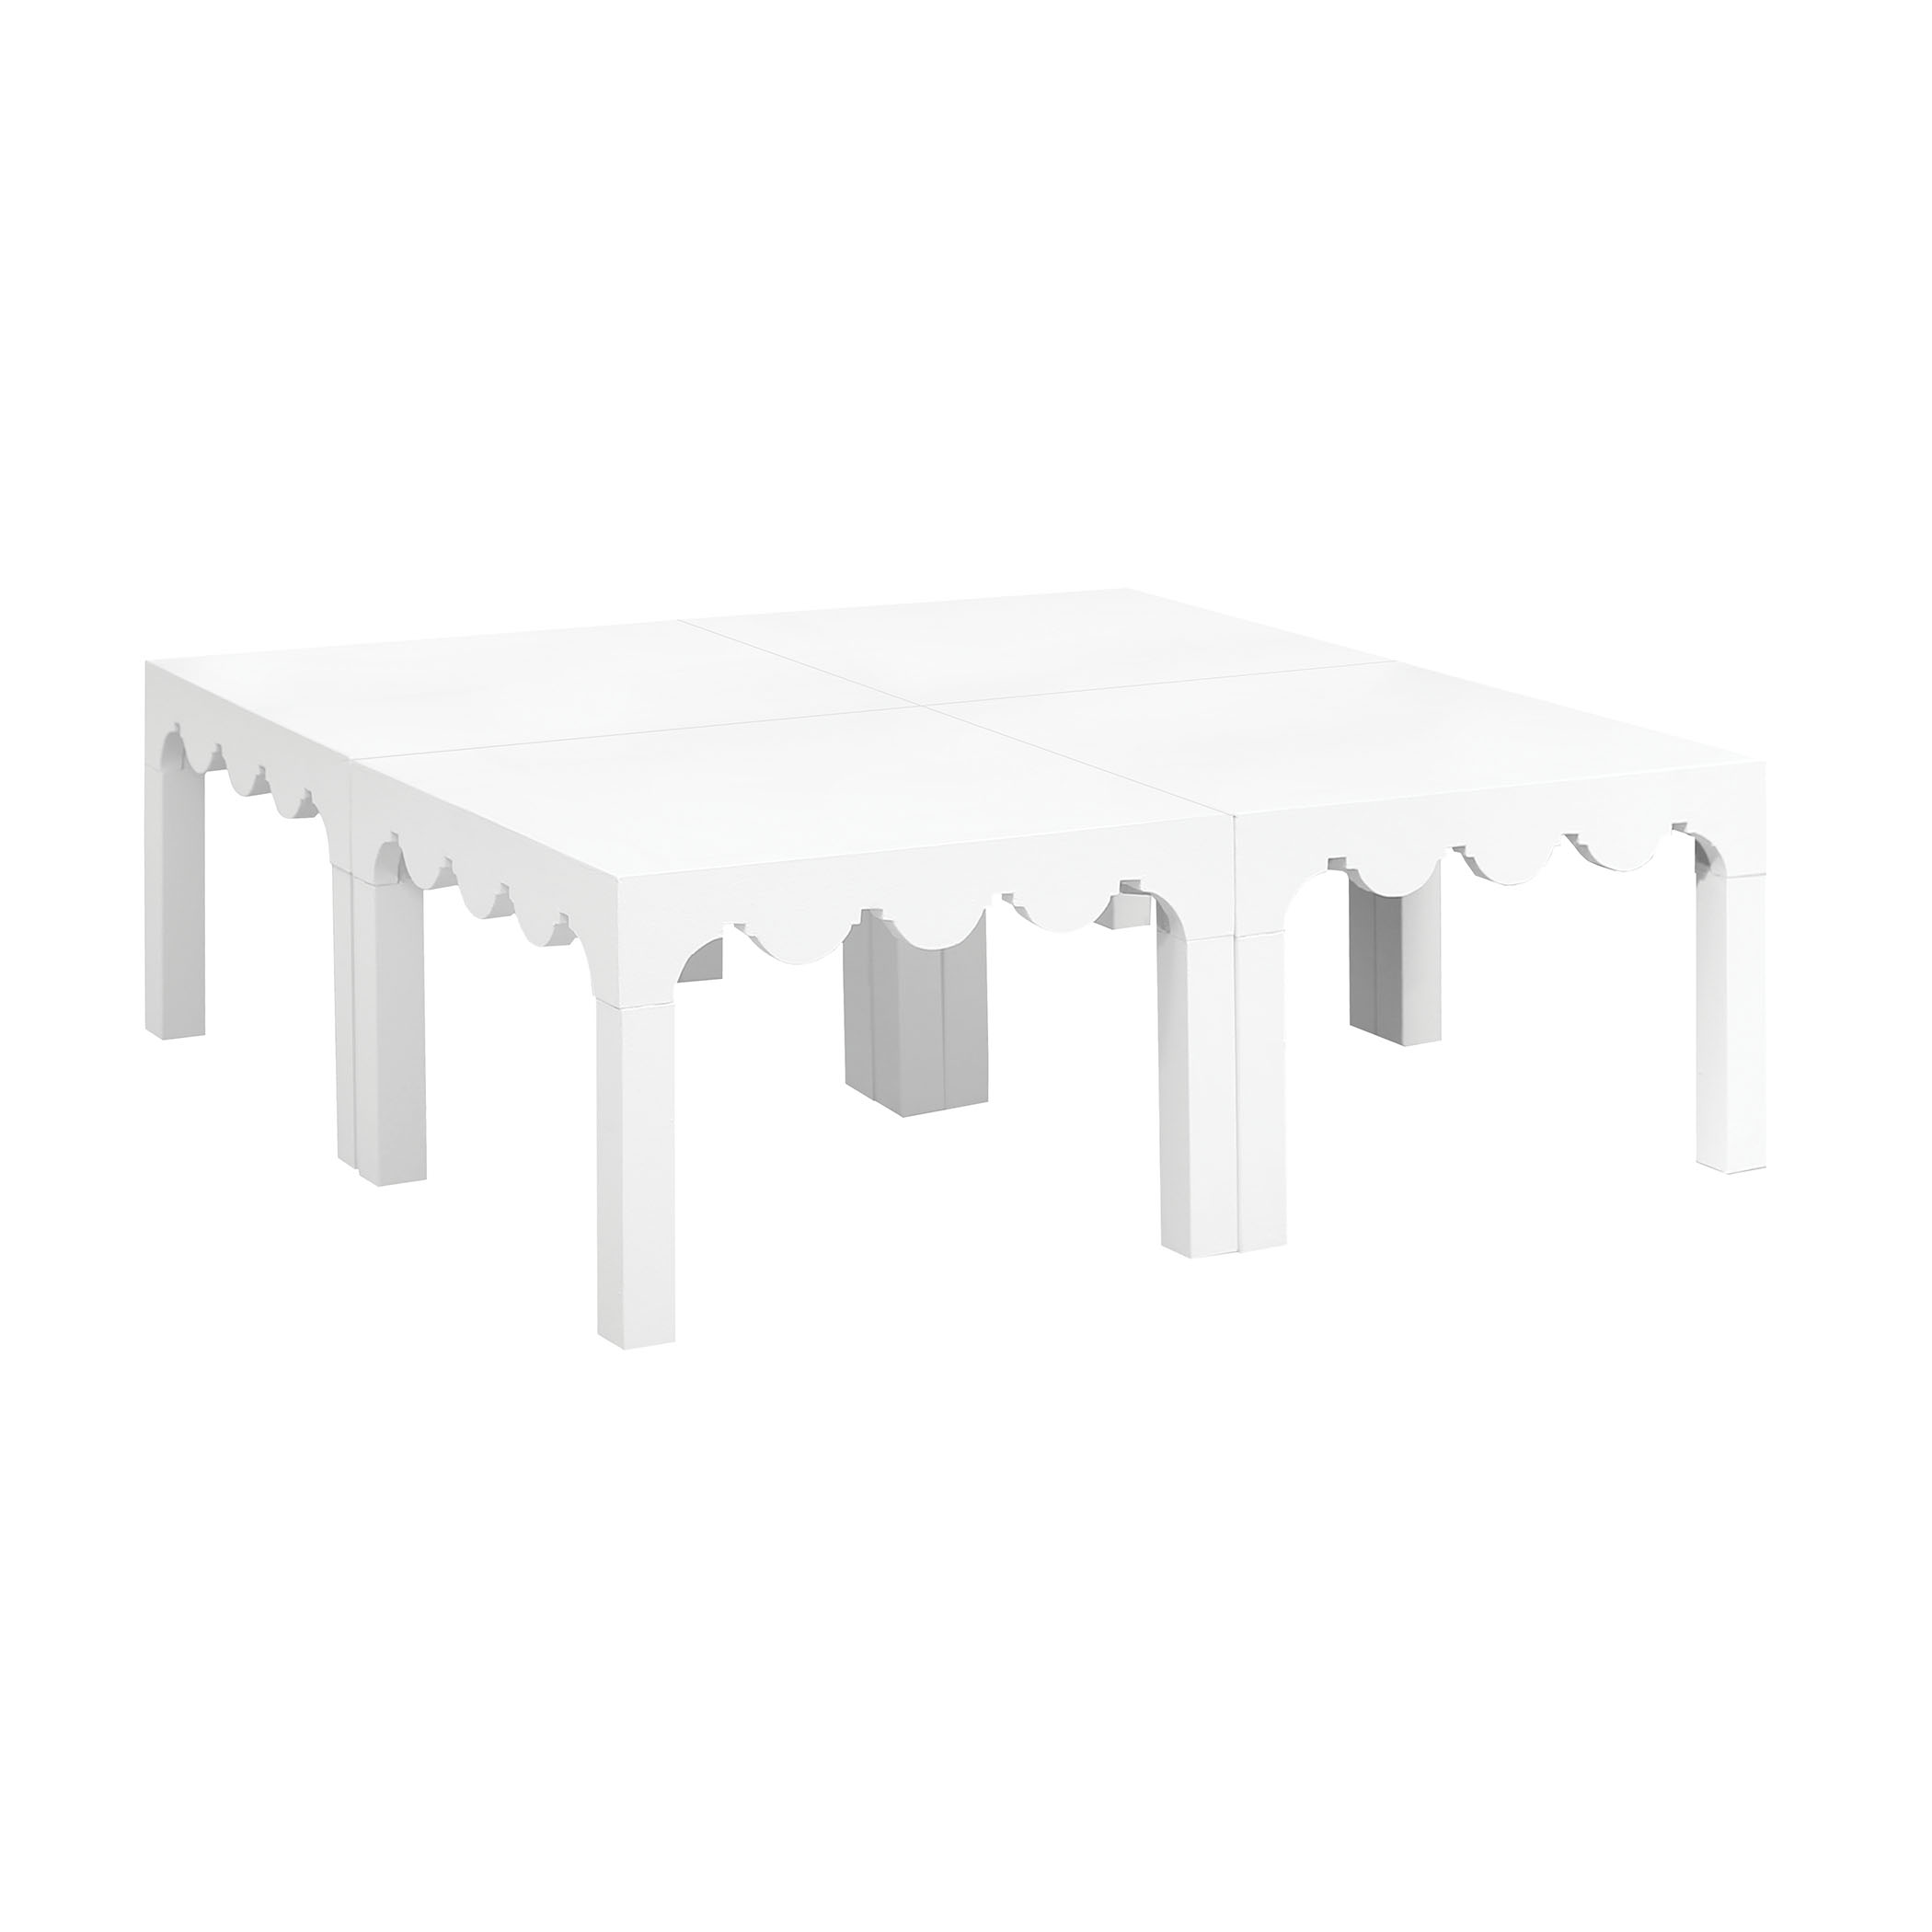 Lifestyle Cocktail Tables Wrapped in White Canvas Set of 4 | Elk Home